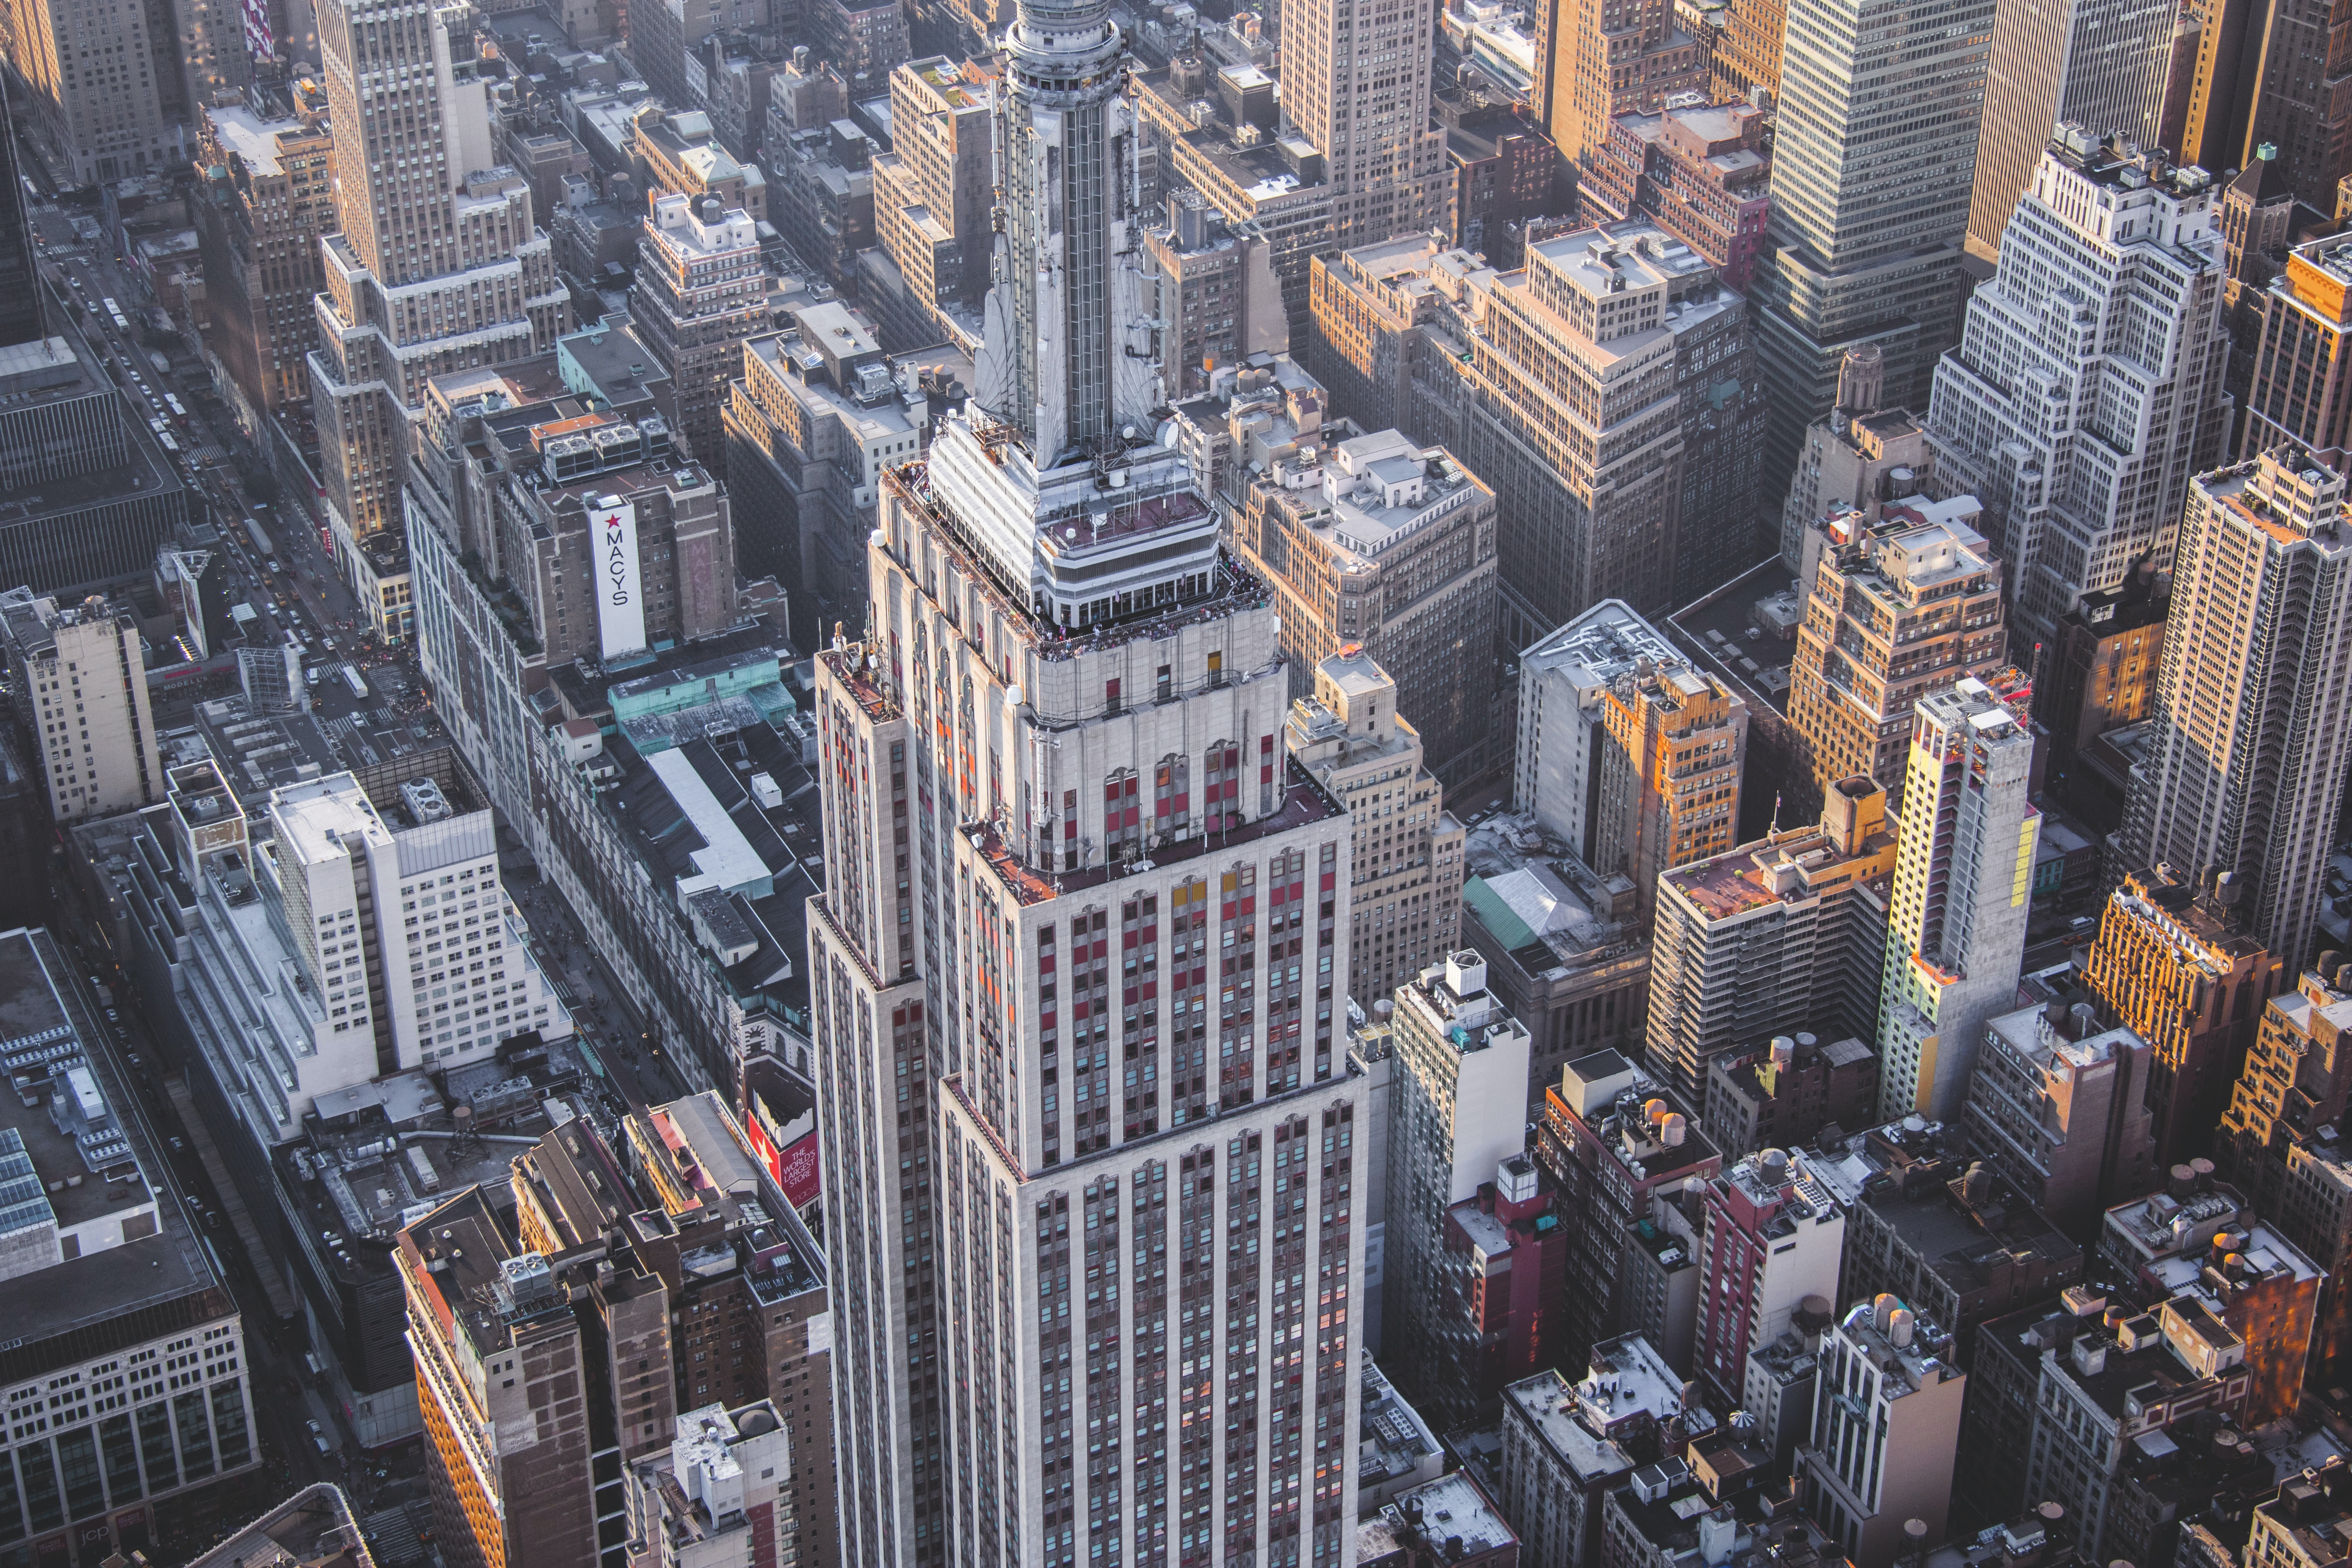 A helicopter view of the Empire State building.